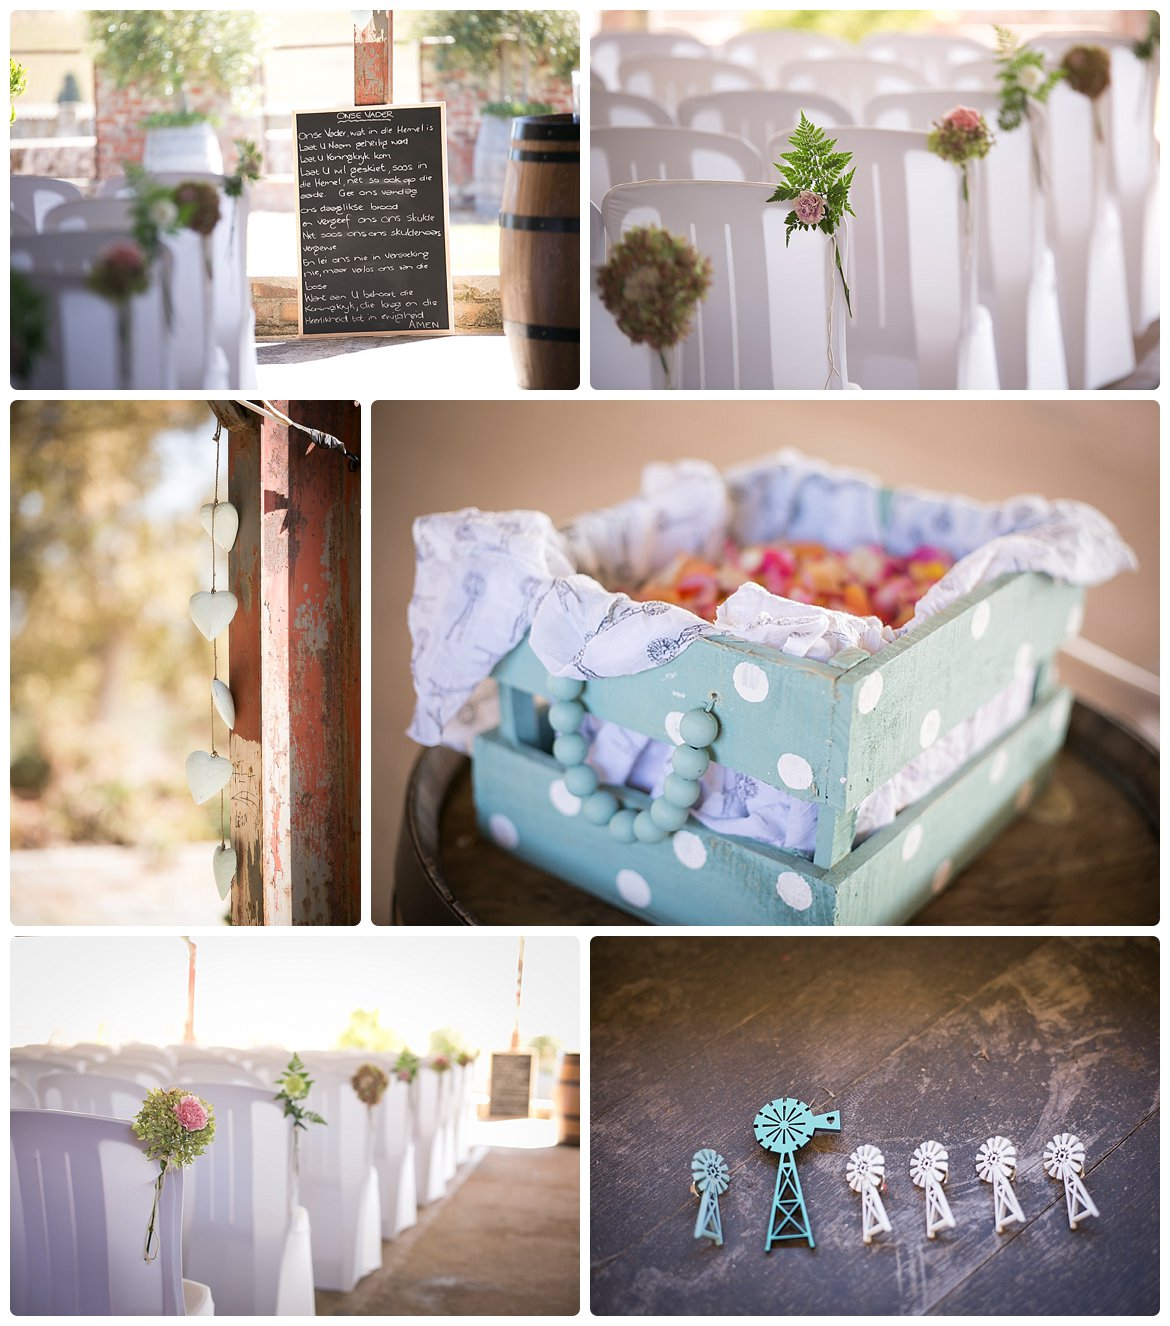 cape-town-wedding-photographer-delvera-joanne-markland-zack-heidi-0005